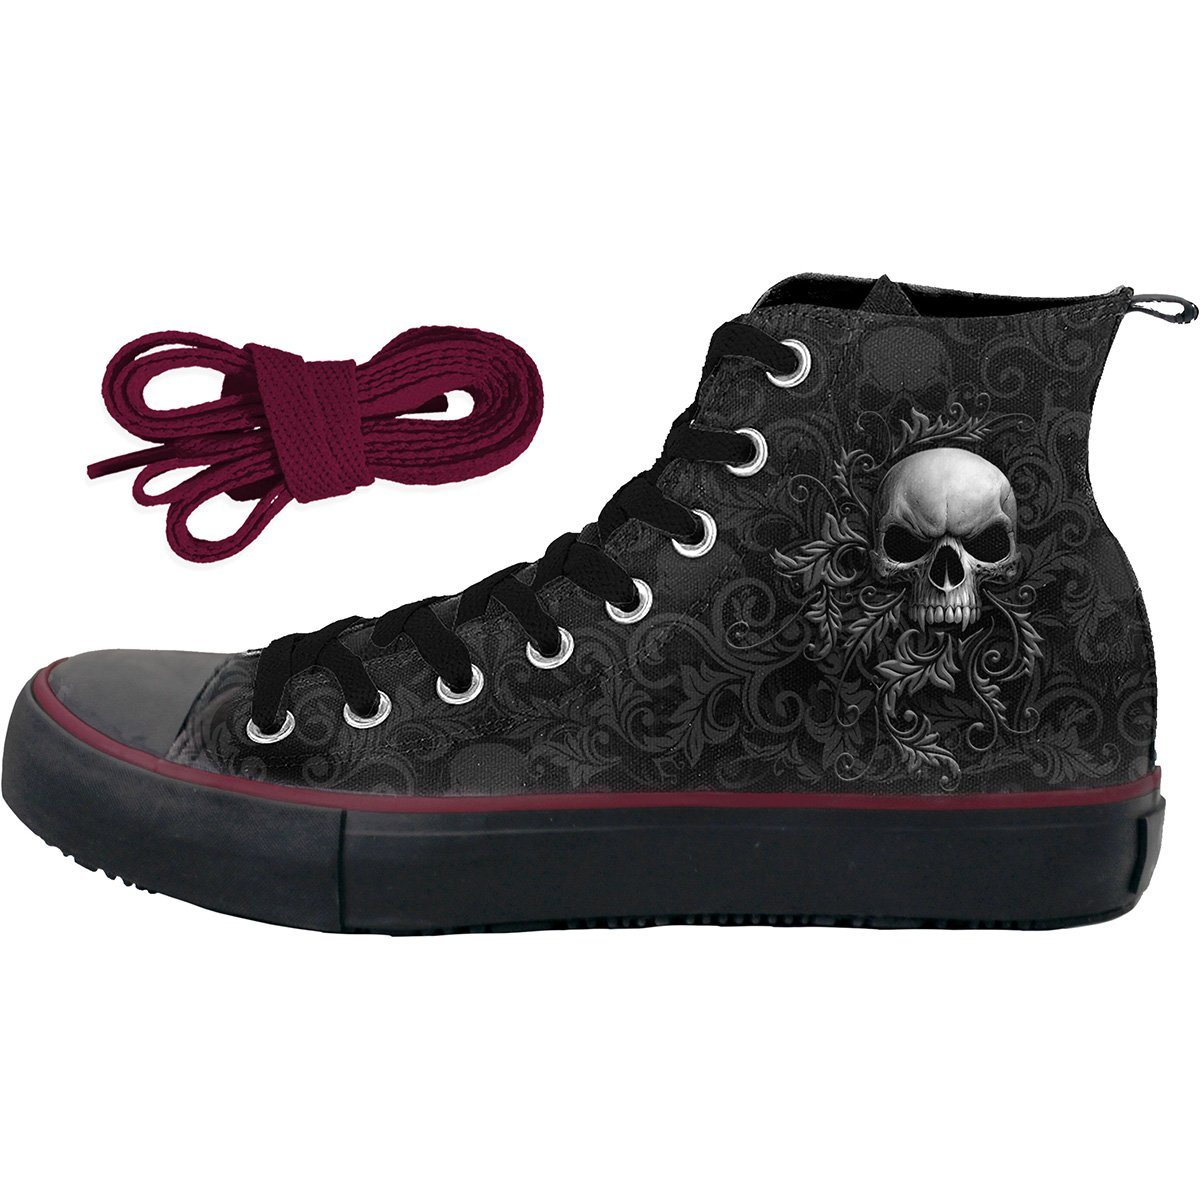 Scrolling Skulls Men's High-Top Sneakers